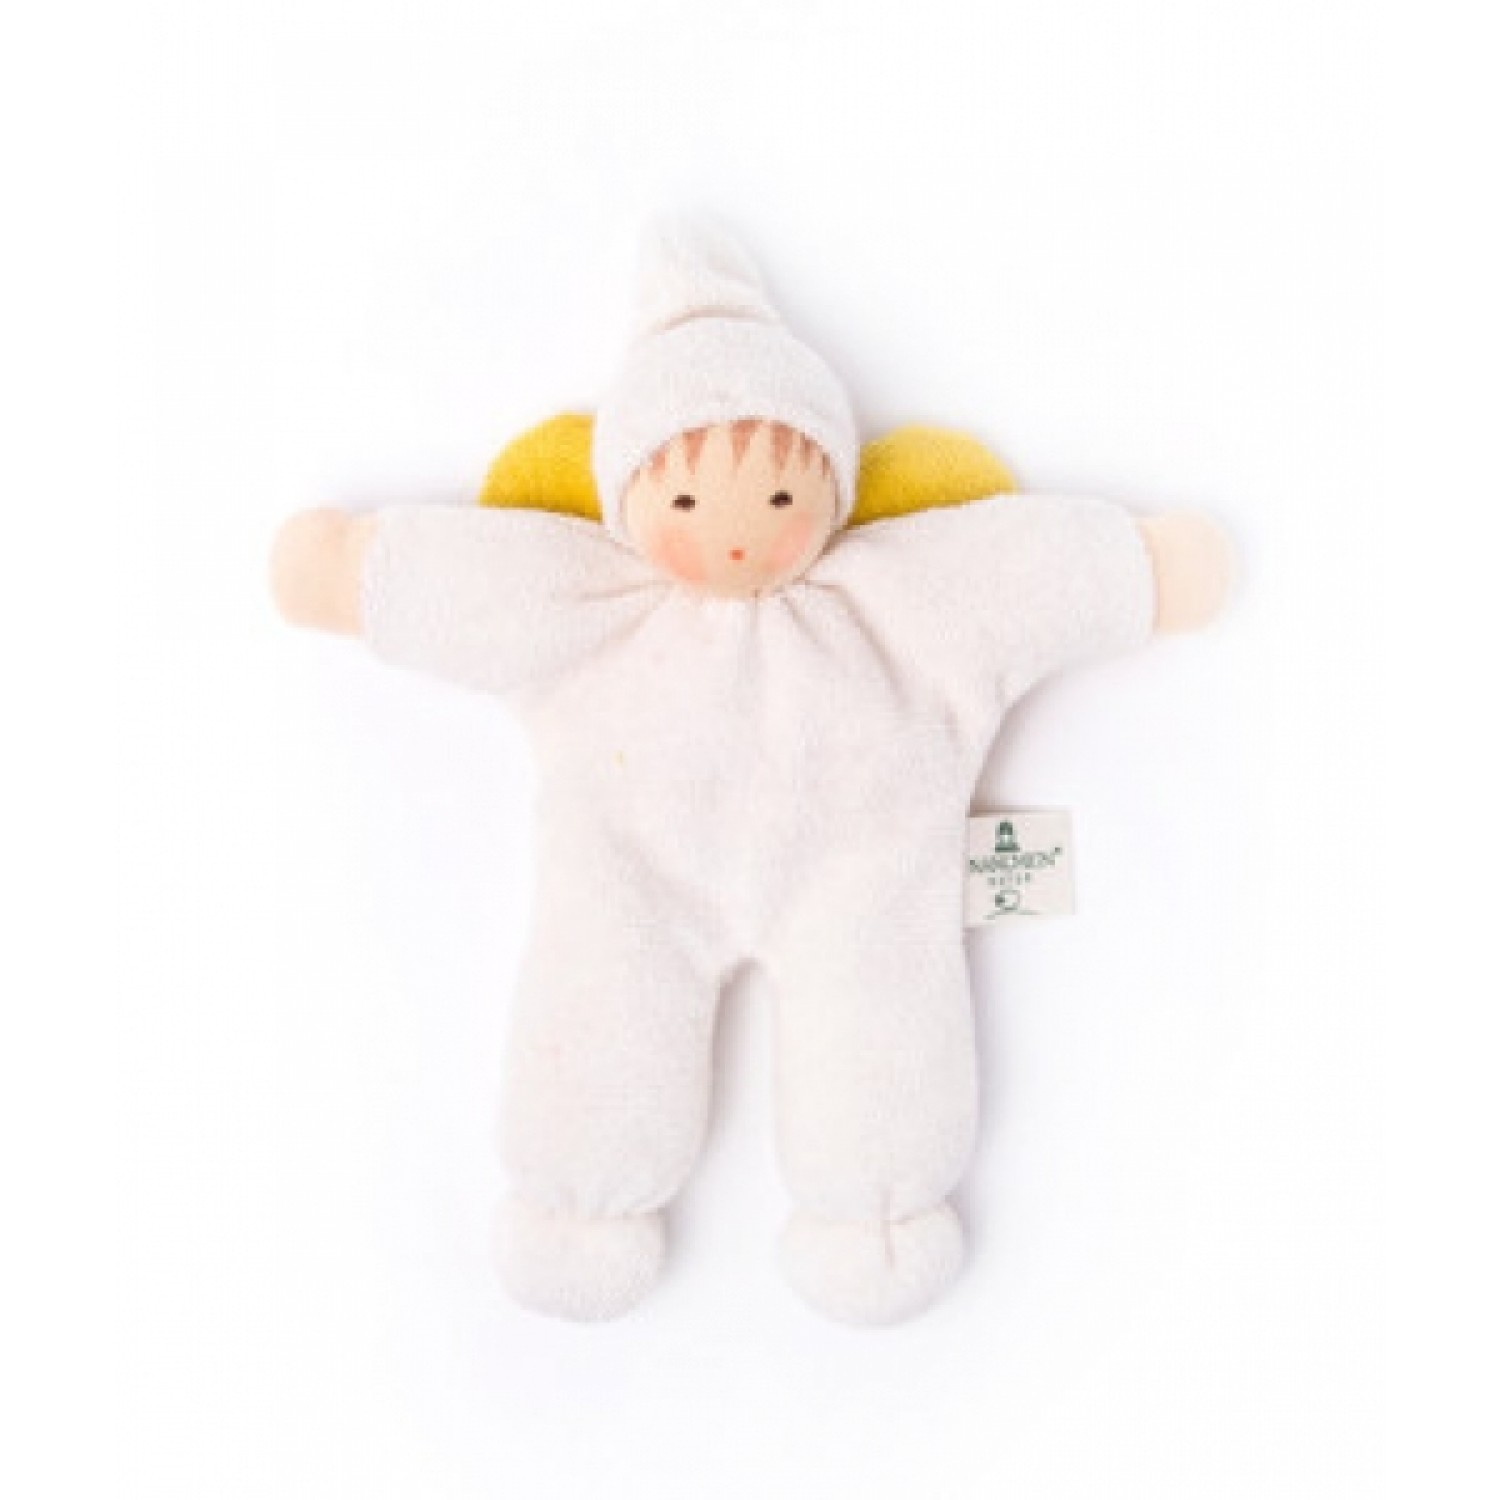 Grasping Toy & Doll Angel of Organic Cotton | Nanchen